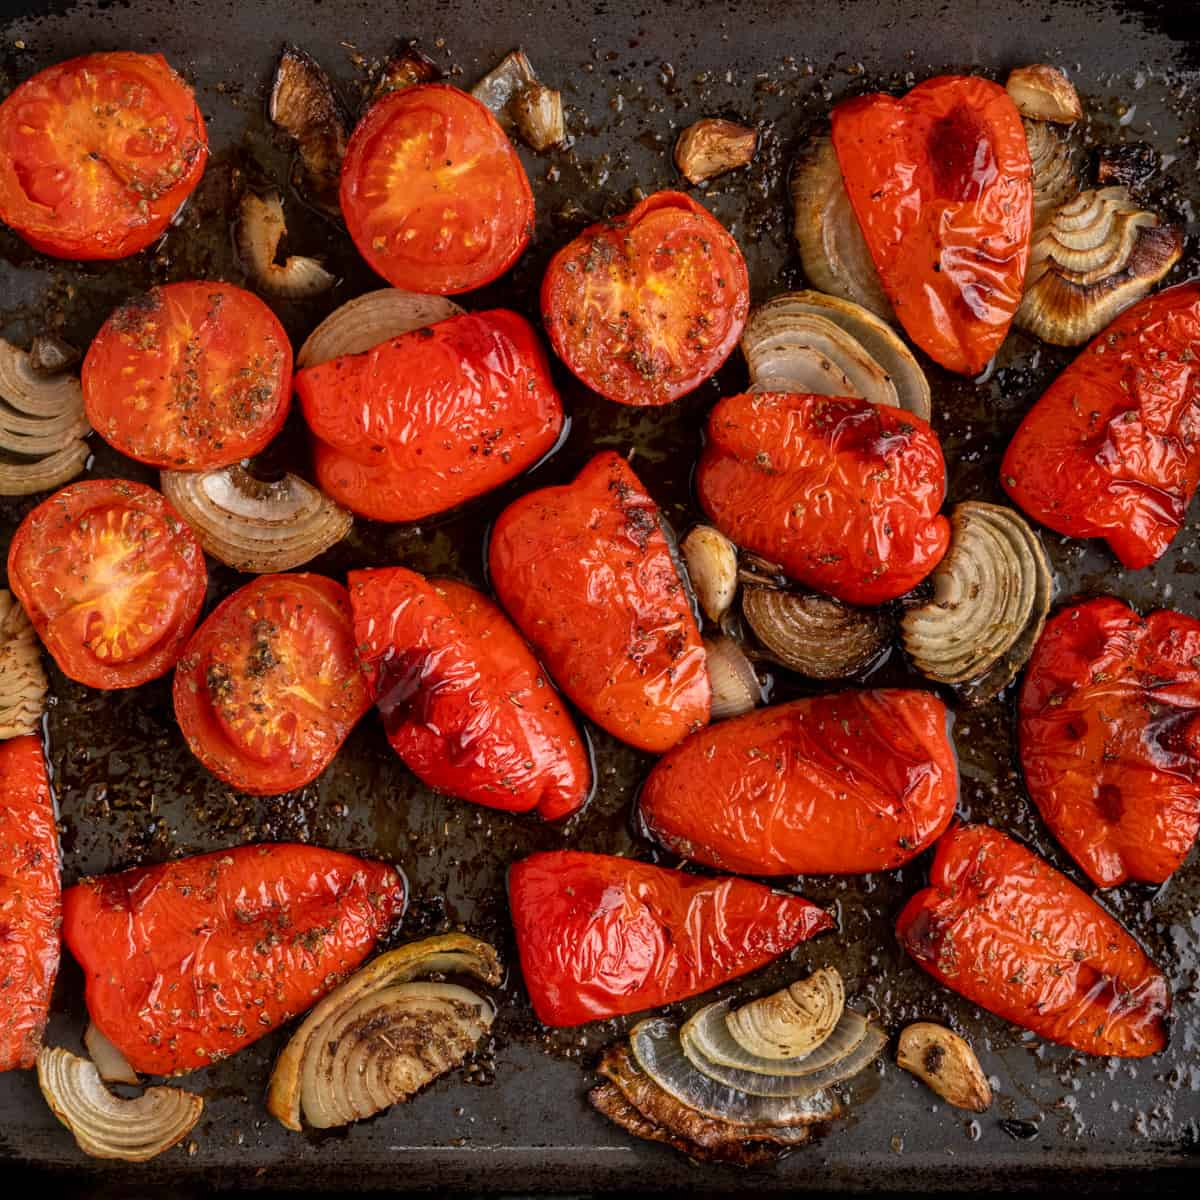 The peppers, tomatoes and onions after roasting, slightly wrinkled and browned in patches.